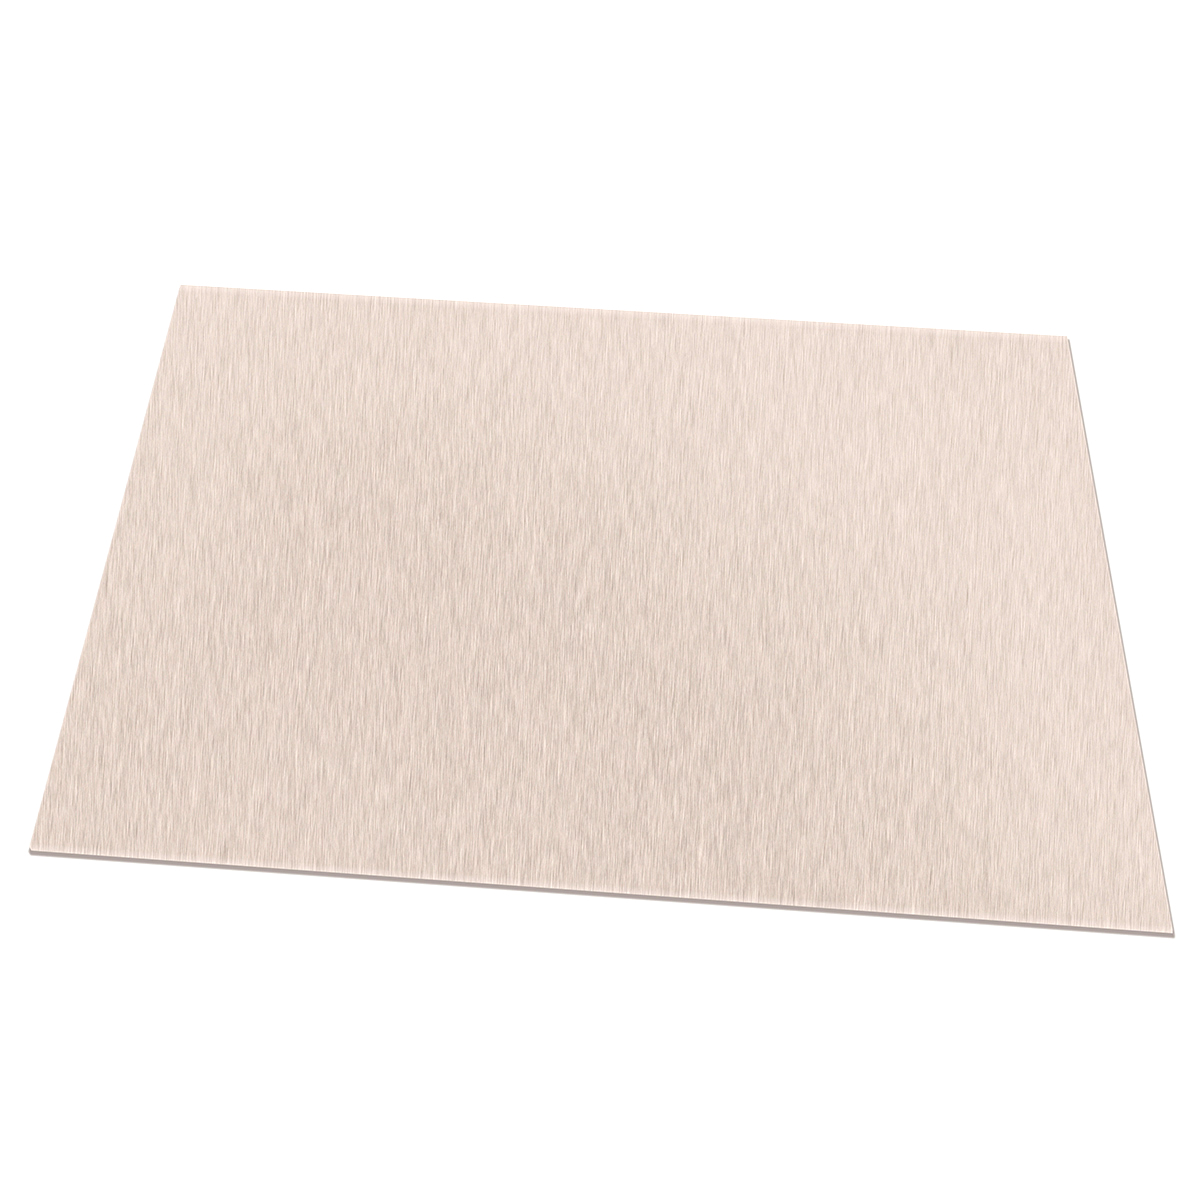 Pratical 0.5mm Thickness 304 Stainless Steel Fine Polished Plate Sheet 100x100mm